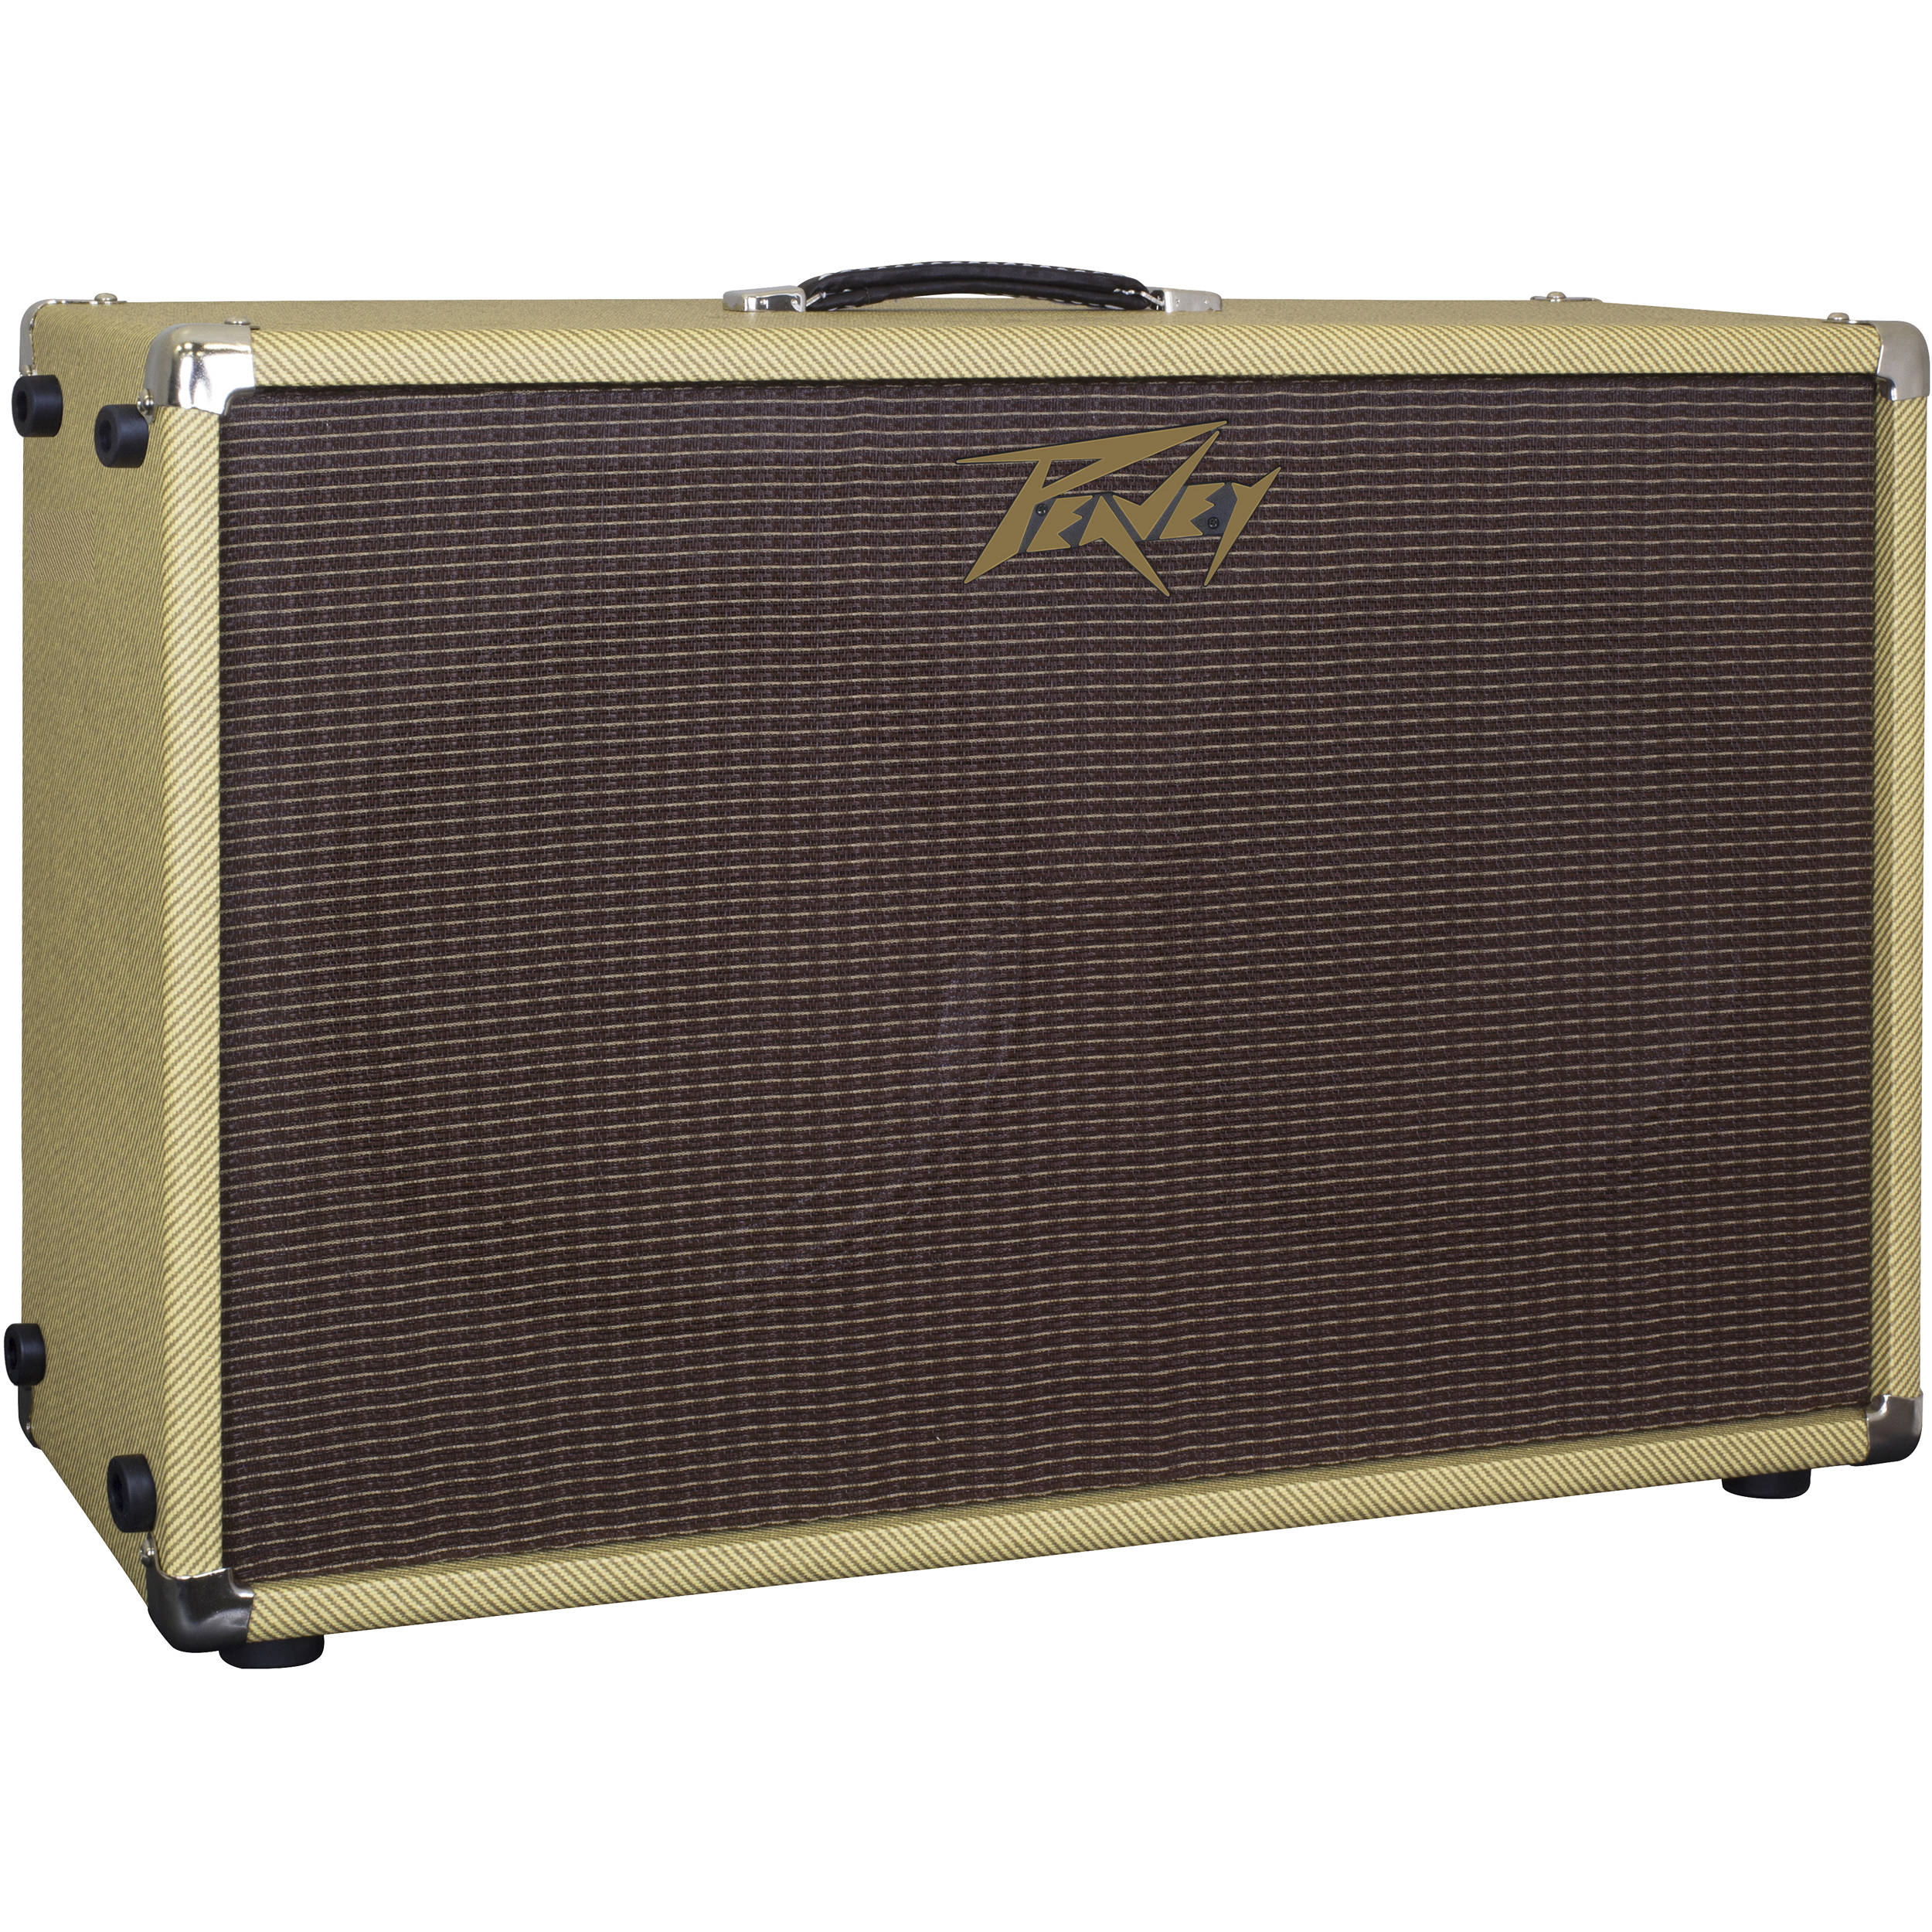 peavey 212 c guitar enclosure 2x12 classic 20 mini amp head extension cabinet ebay. Black Bedroom Furniture Sets. Home Design Ideas